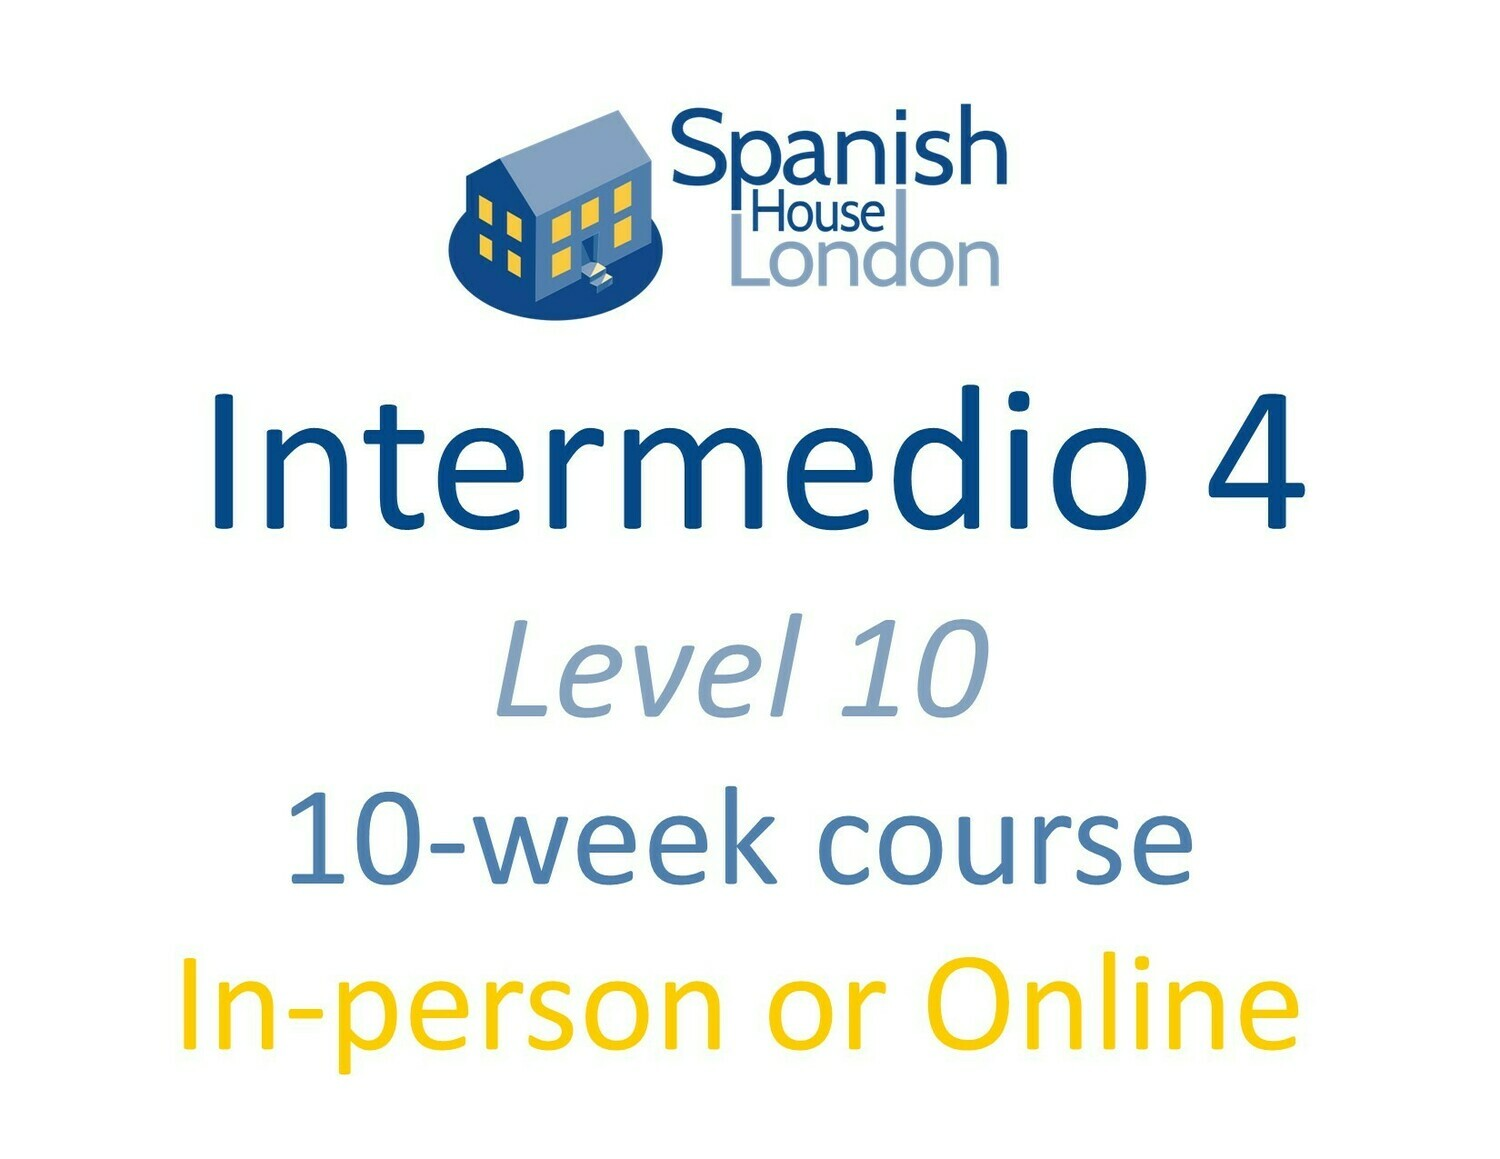 Intermedio 4 Course starting on 28th April at 7.30pm in Clapham